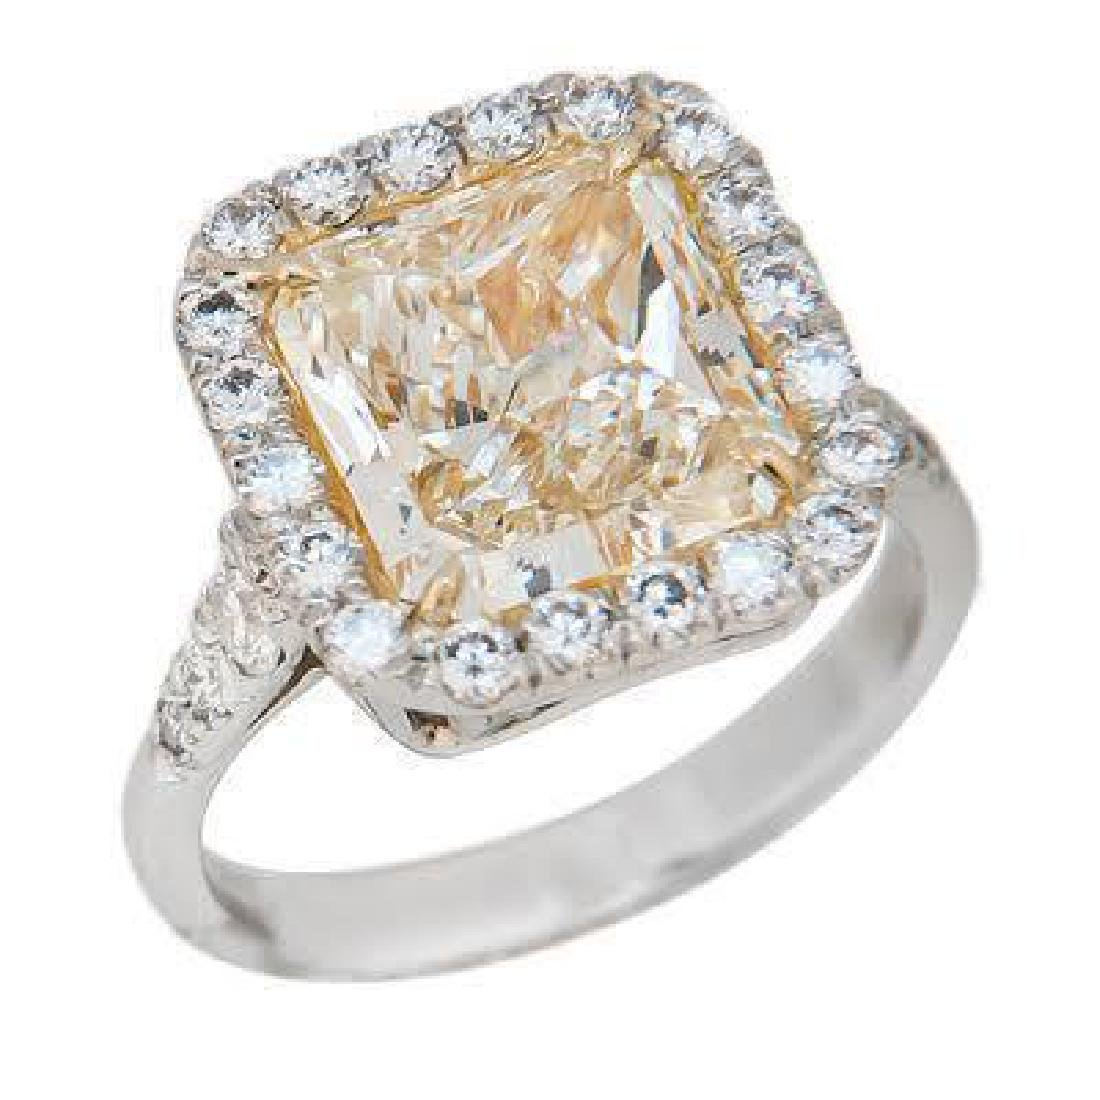 4.69 TCW FANCY YELLOW RADIANT CUT ENGAGEMENT RING